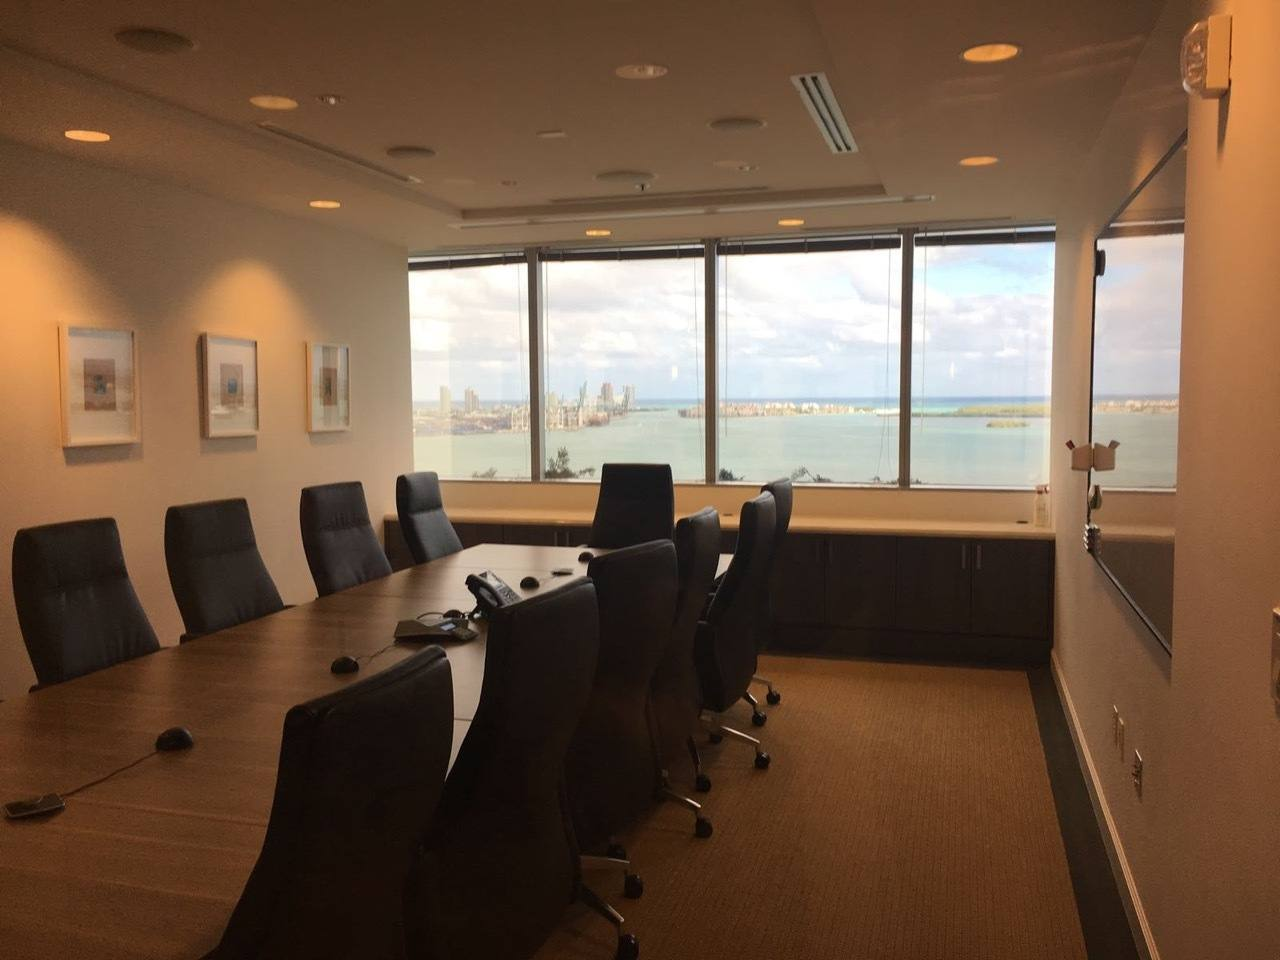 DeBuren Group Headquarters Meeting Room, Miami, USA